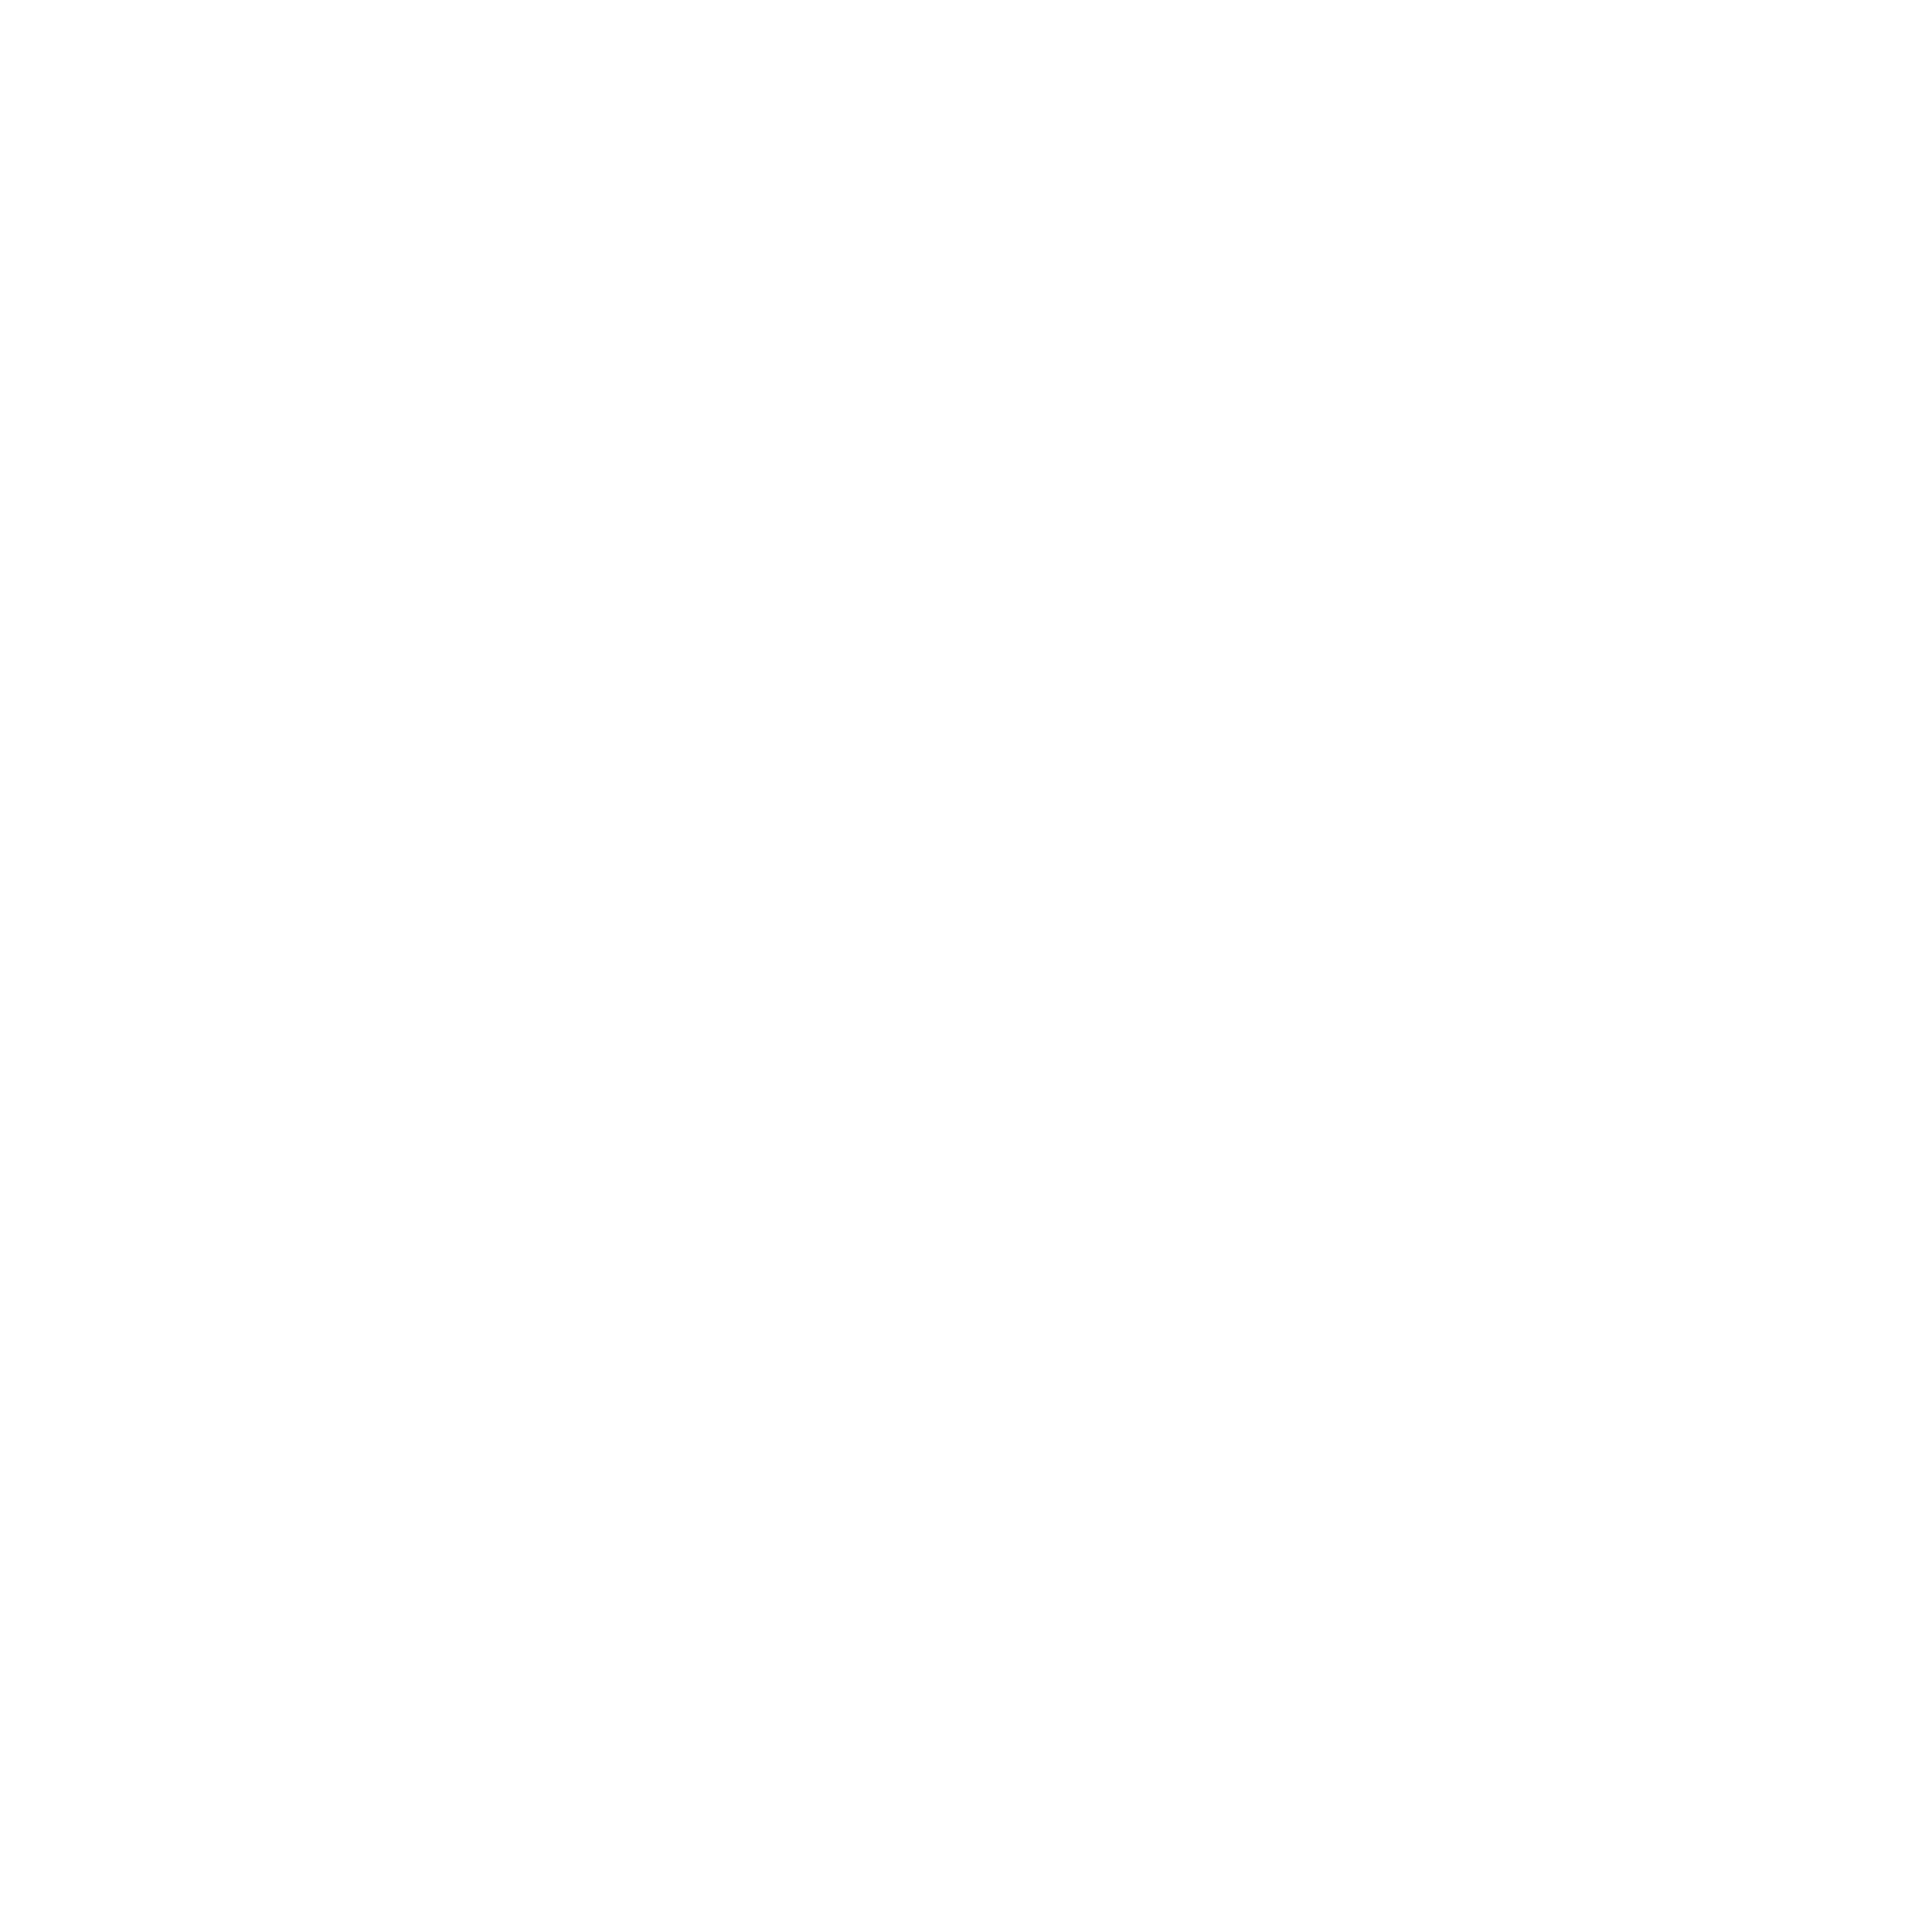 19 Hundred Restaurant